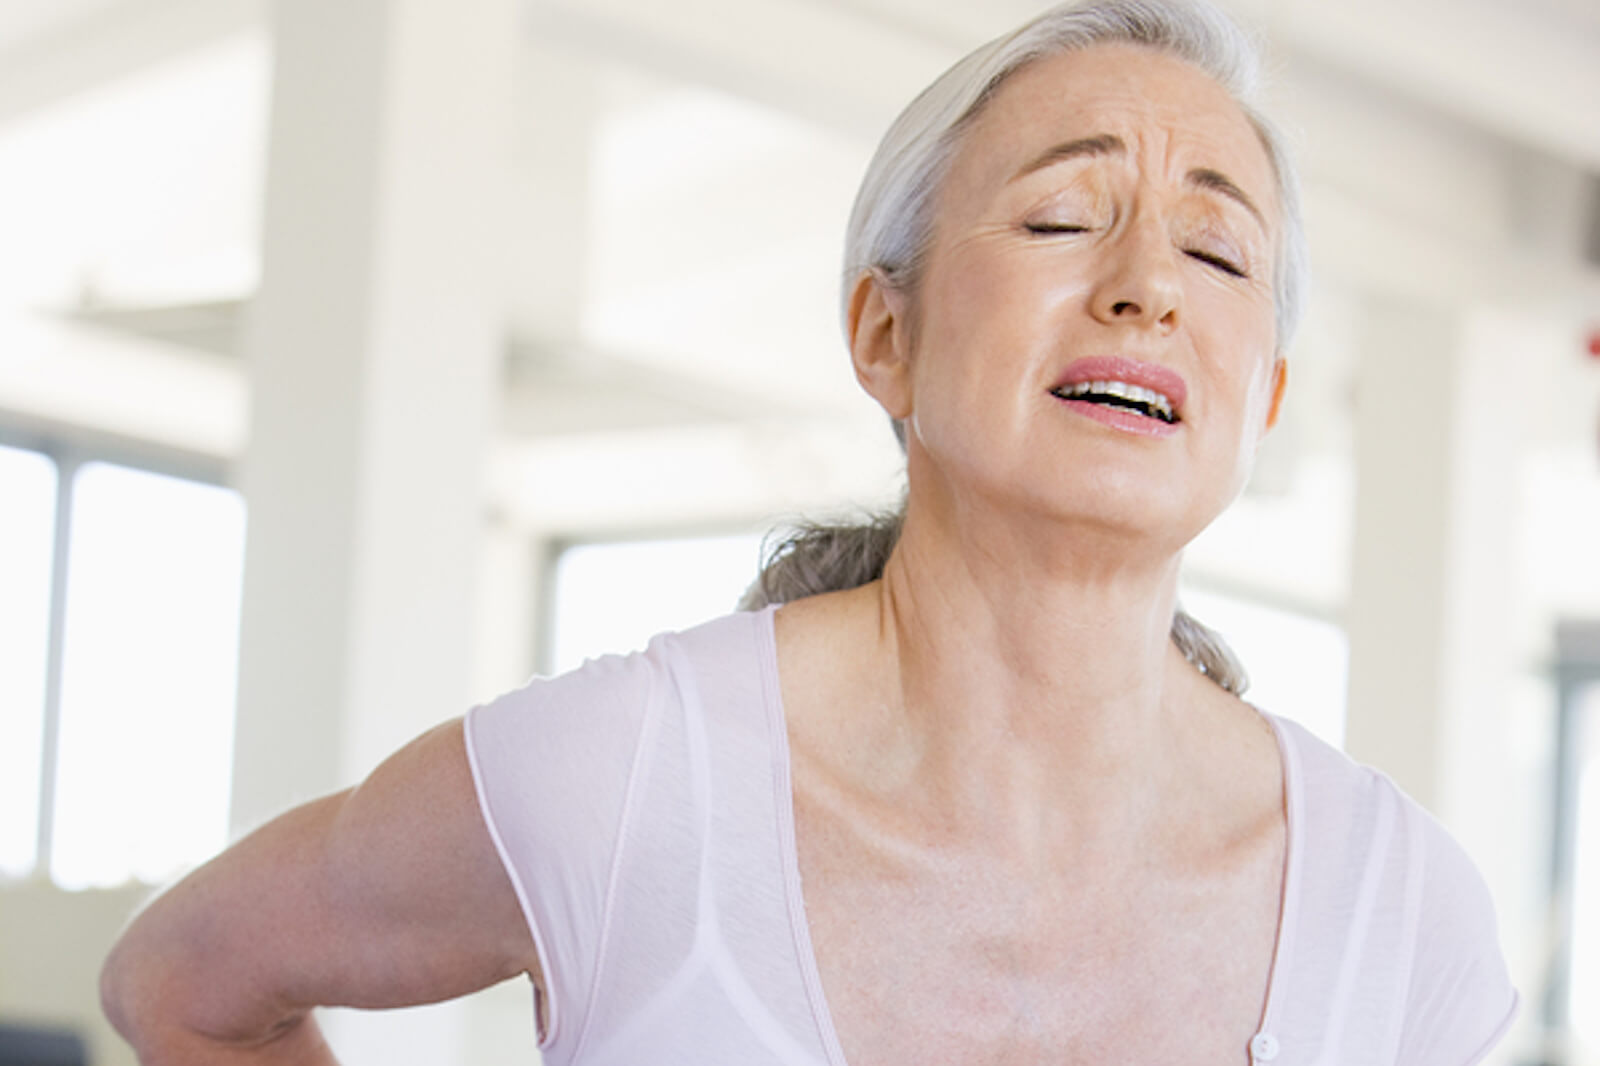 A woman suffers from back pain